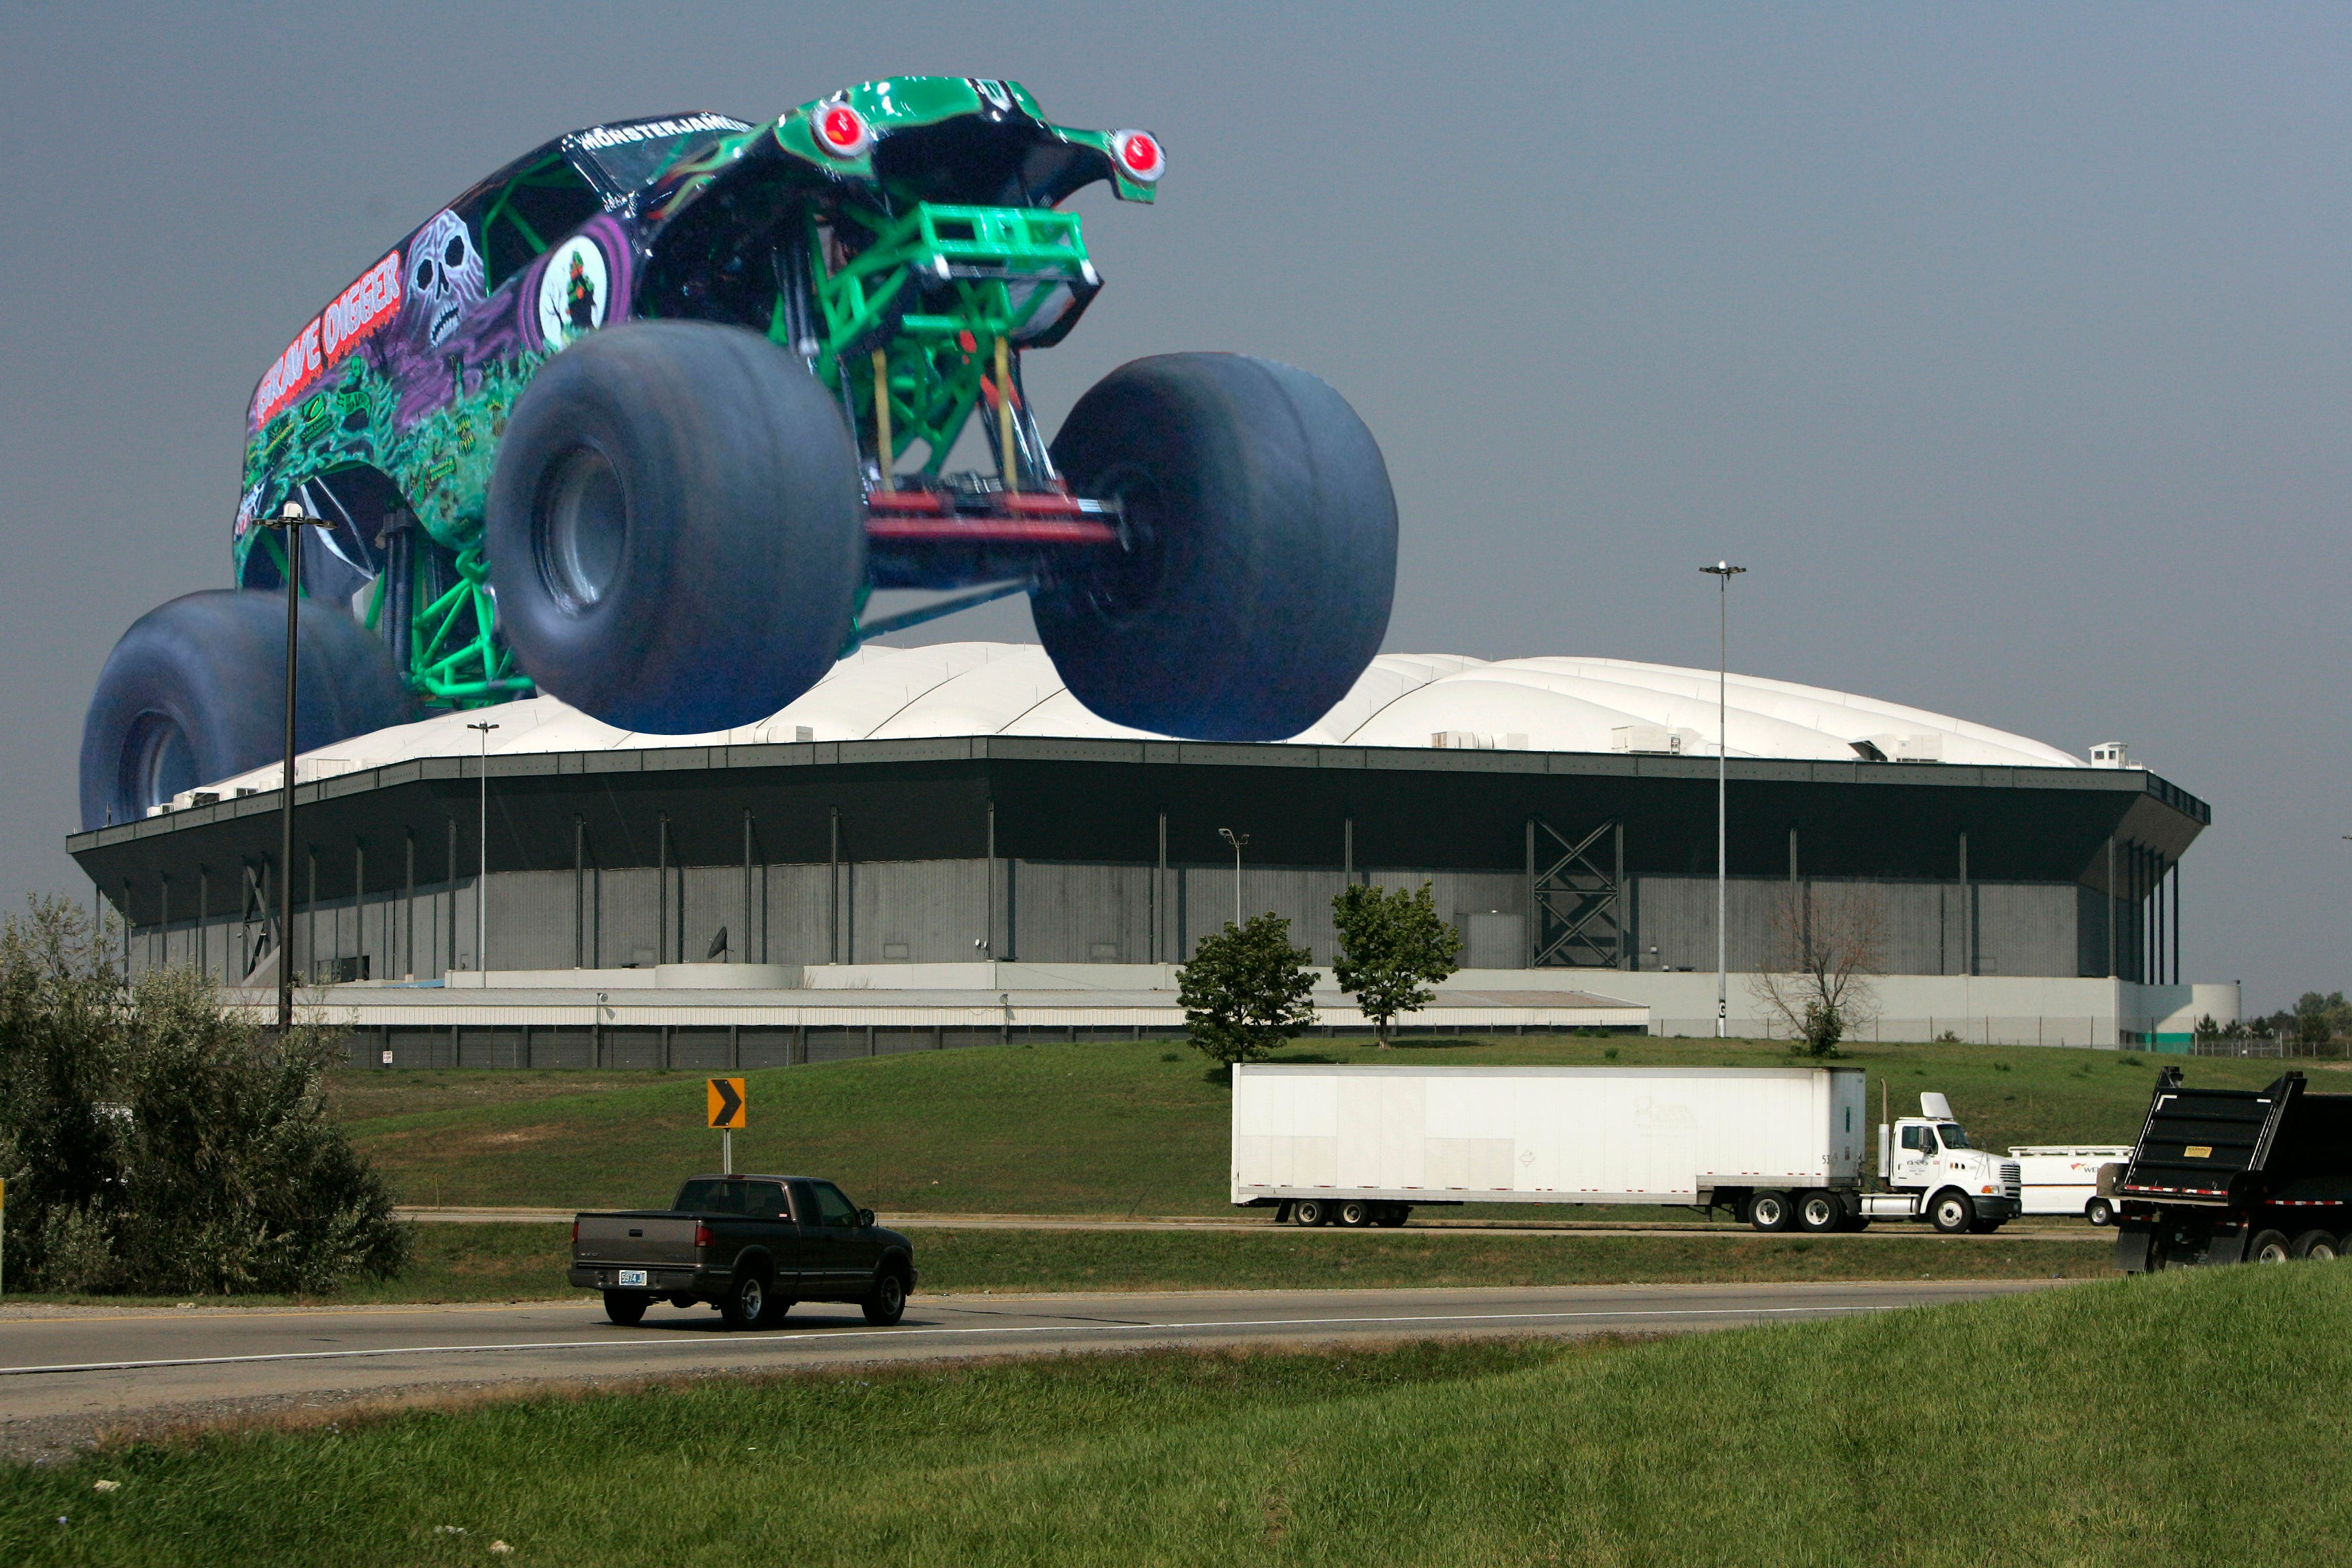 On October 5, 2005, a giant inflatable monster truck